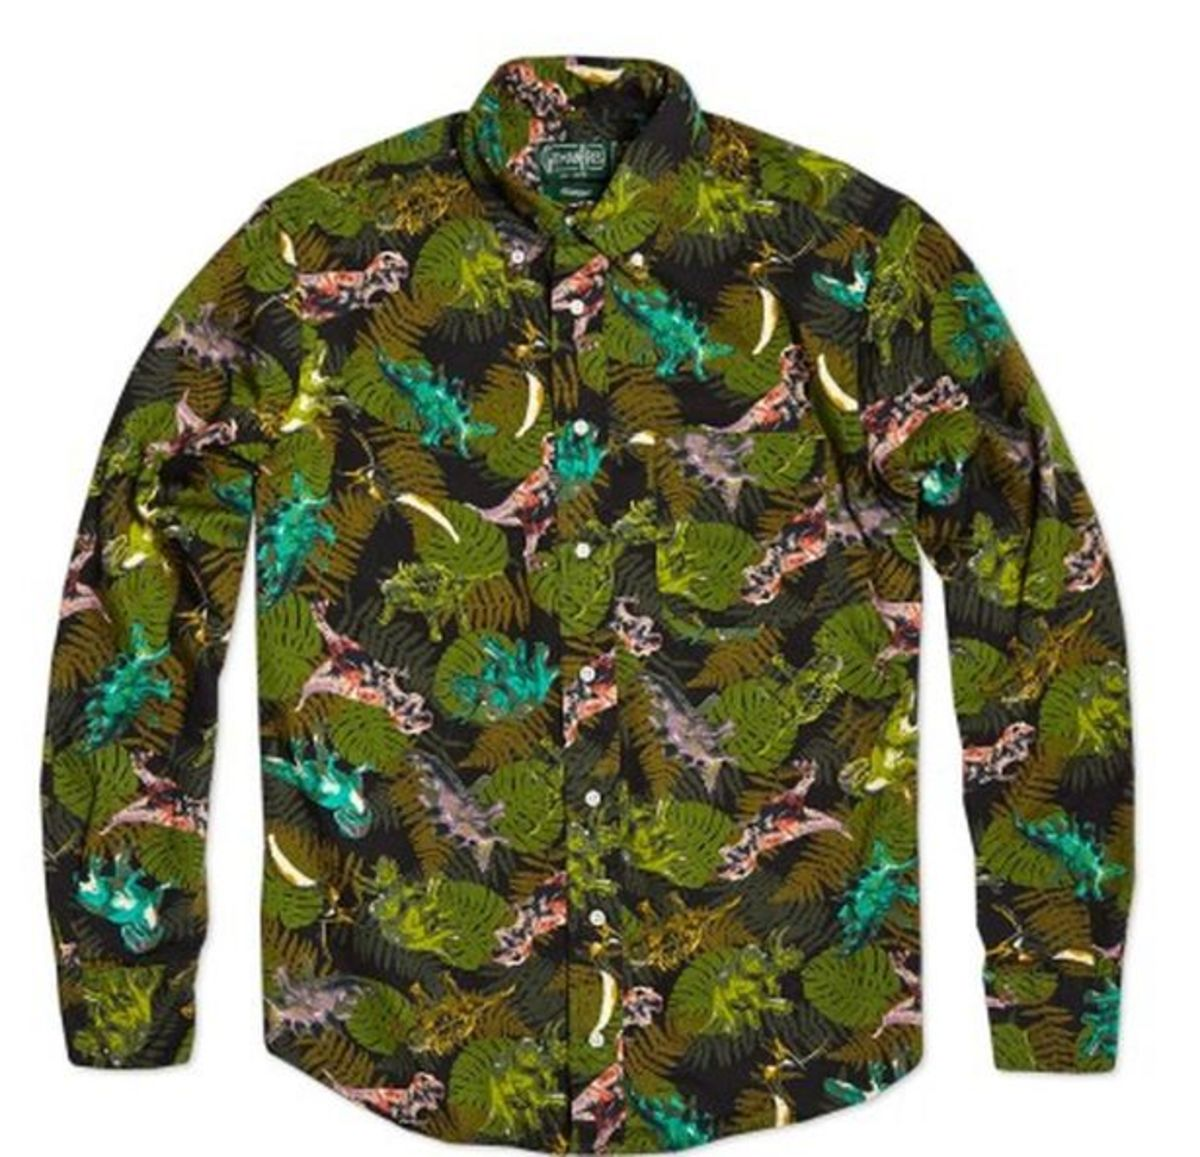 EDM Culture: Gitman Vintage Release Fall/Winter 2013 Shirt Designs; The Dinosaur Is In The Details